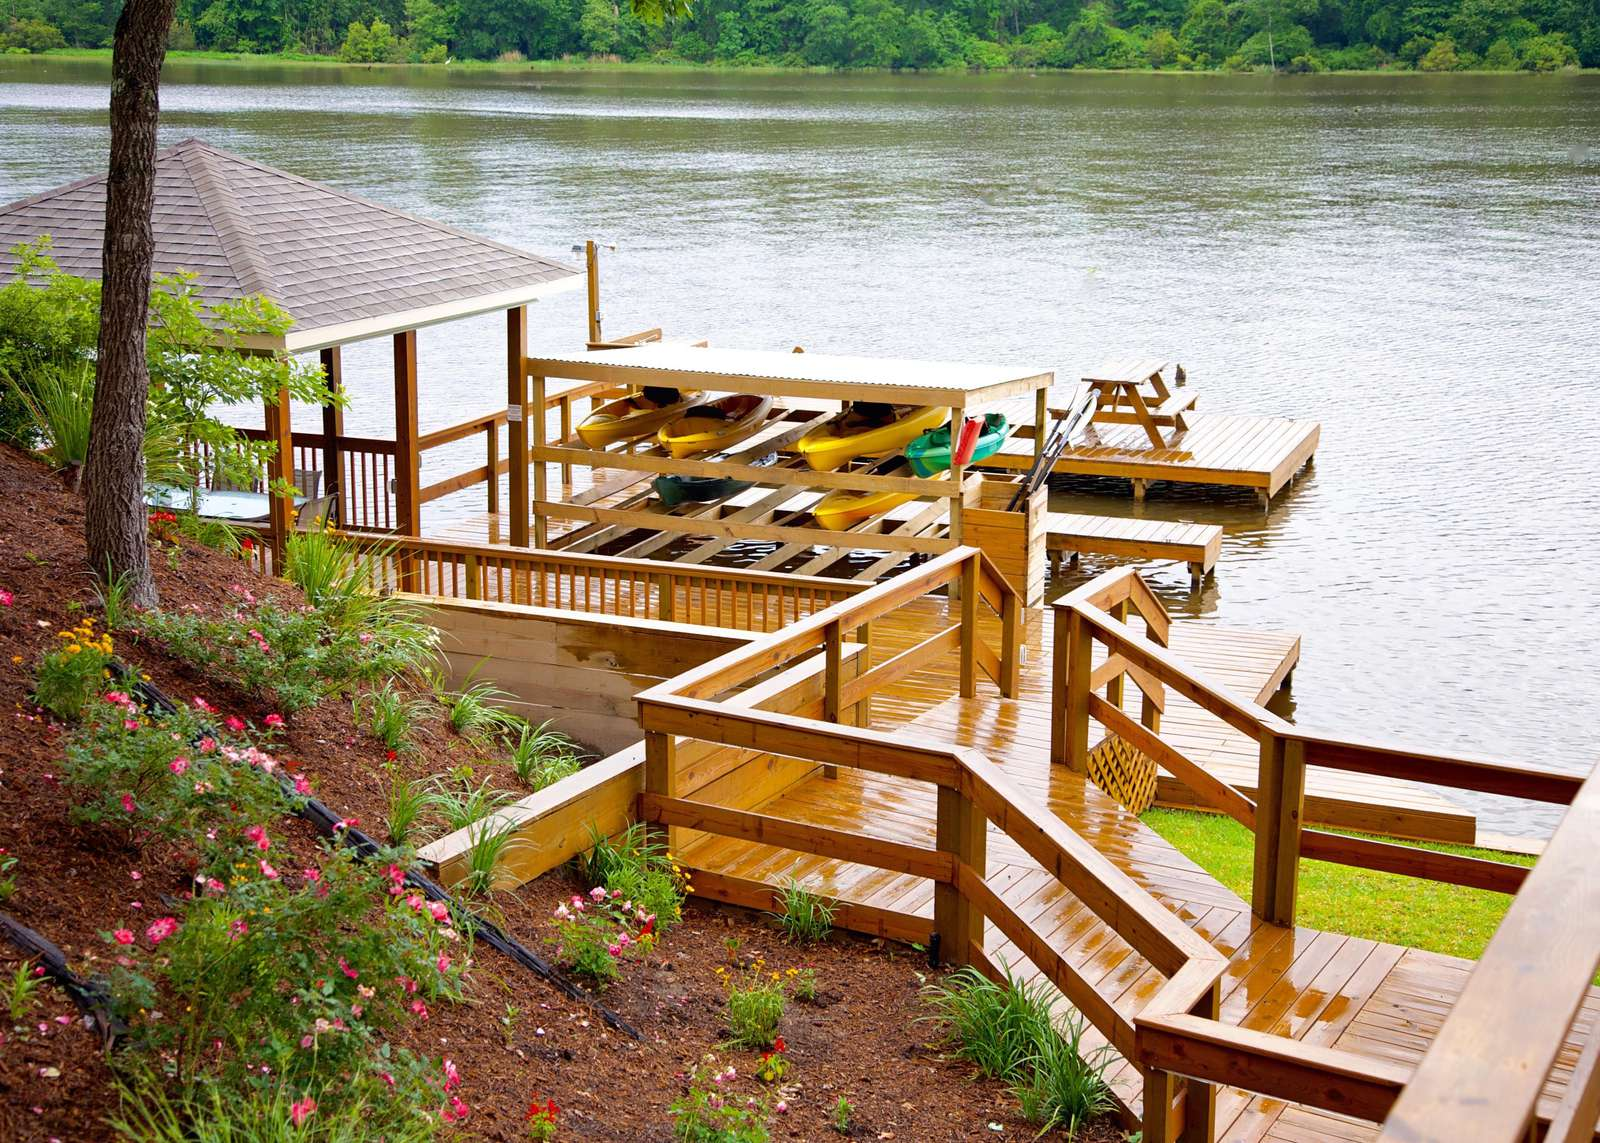 Your personal dock with boat slip, shade cover and fans await your family's fish and swim fest.